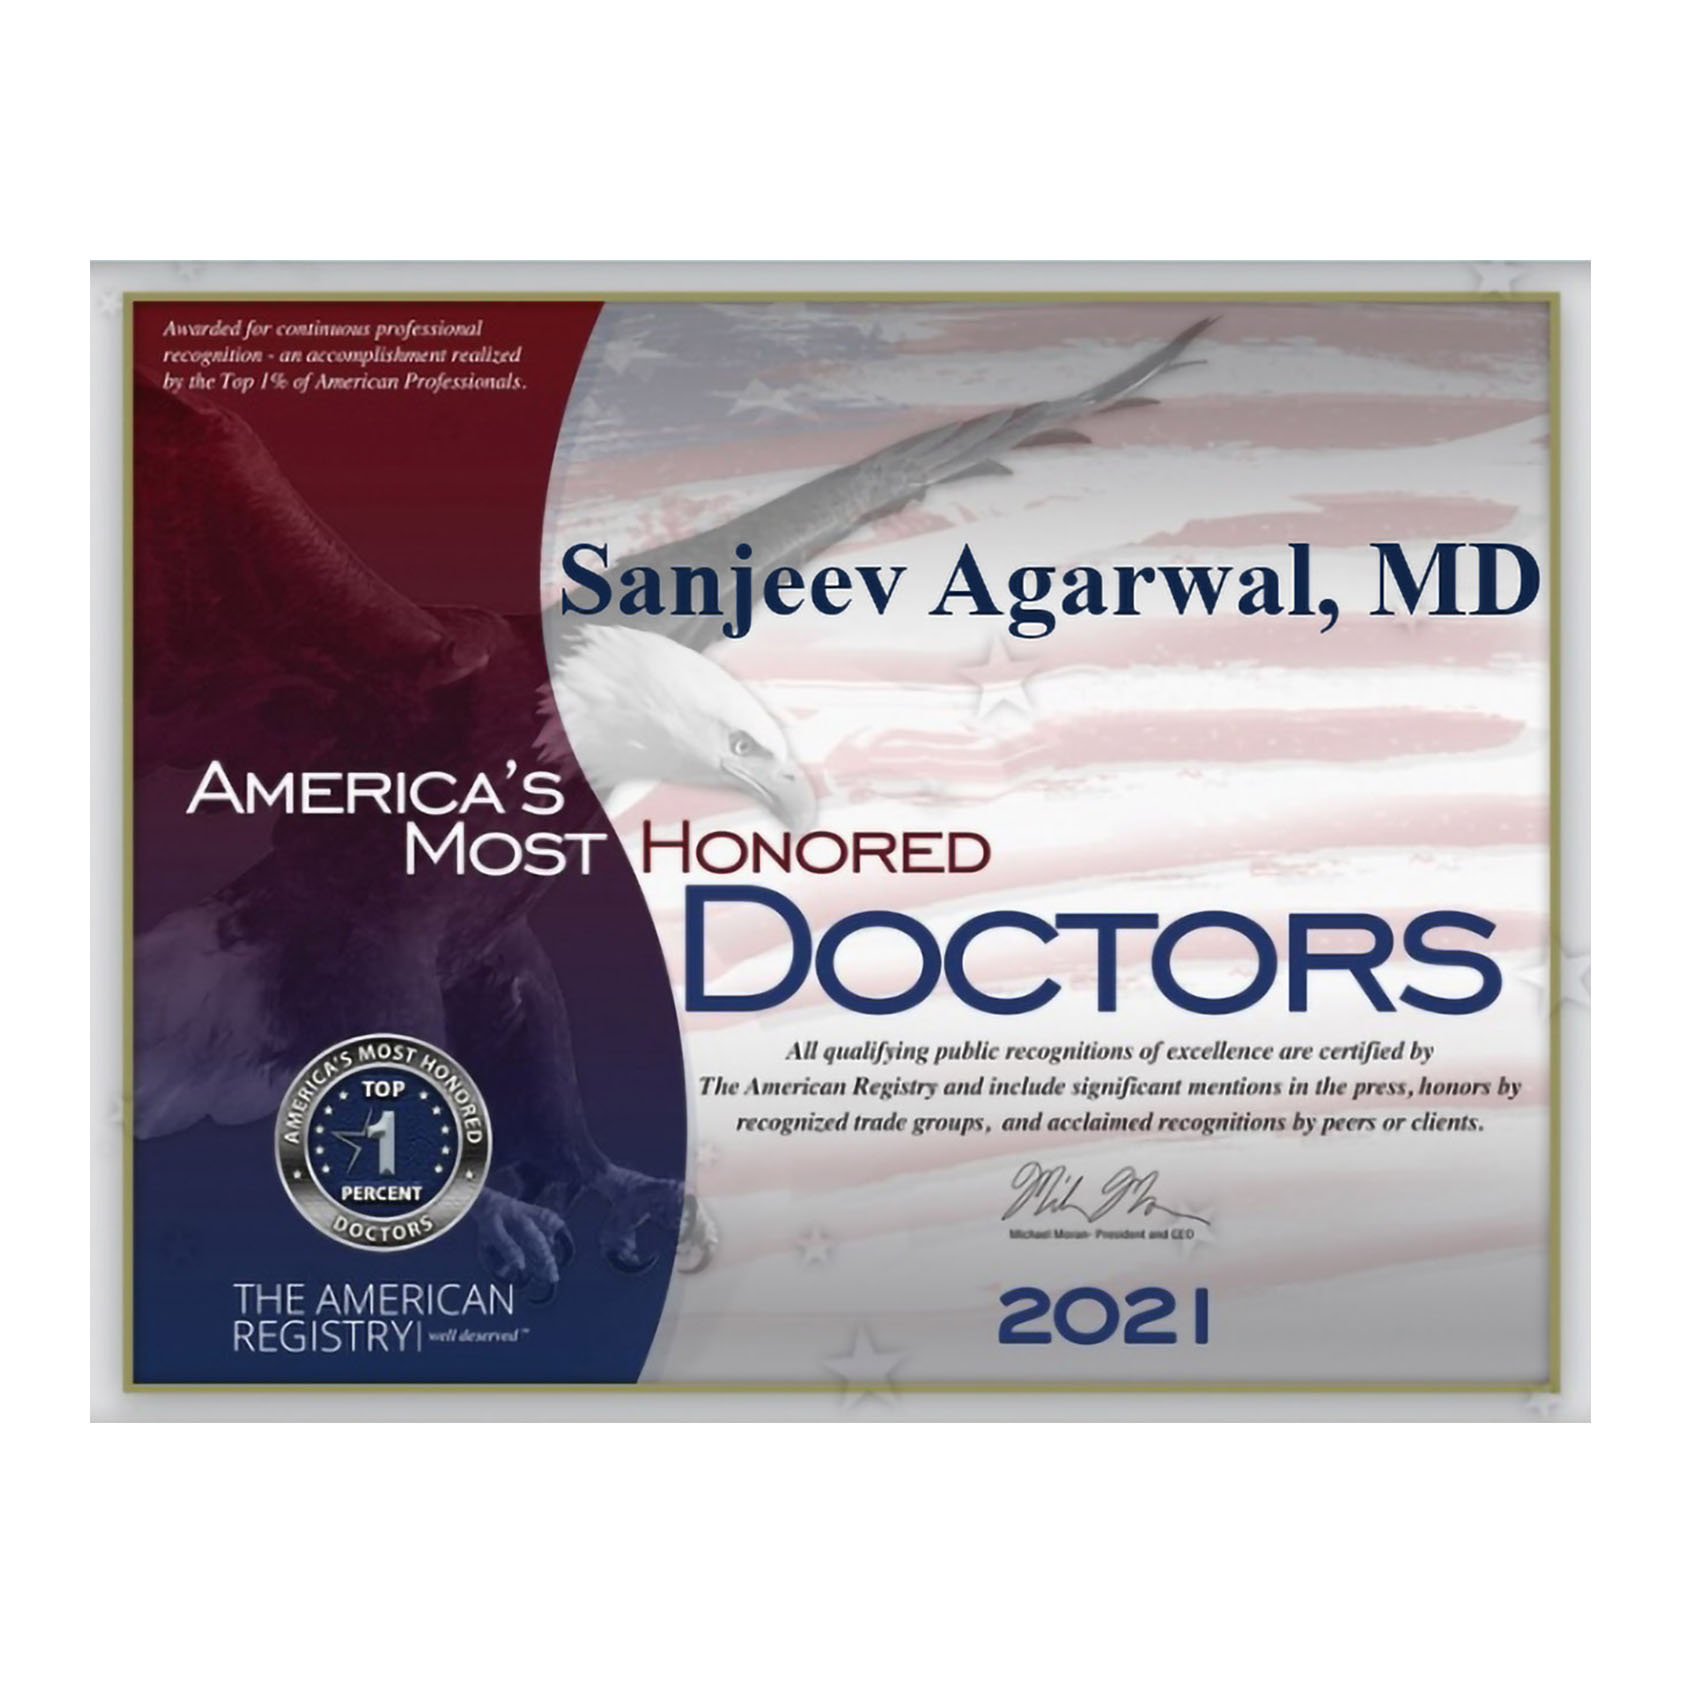 America's Most Honored Doctors 2021